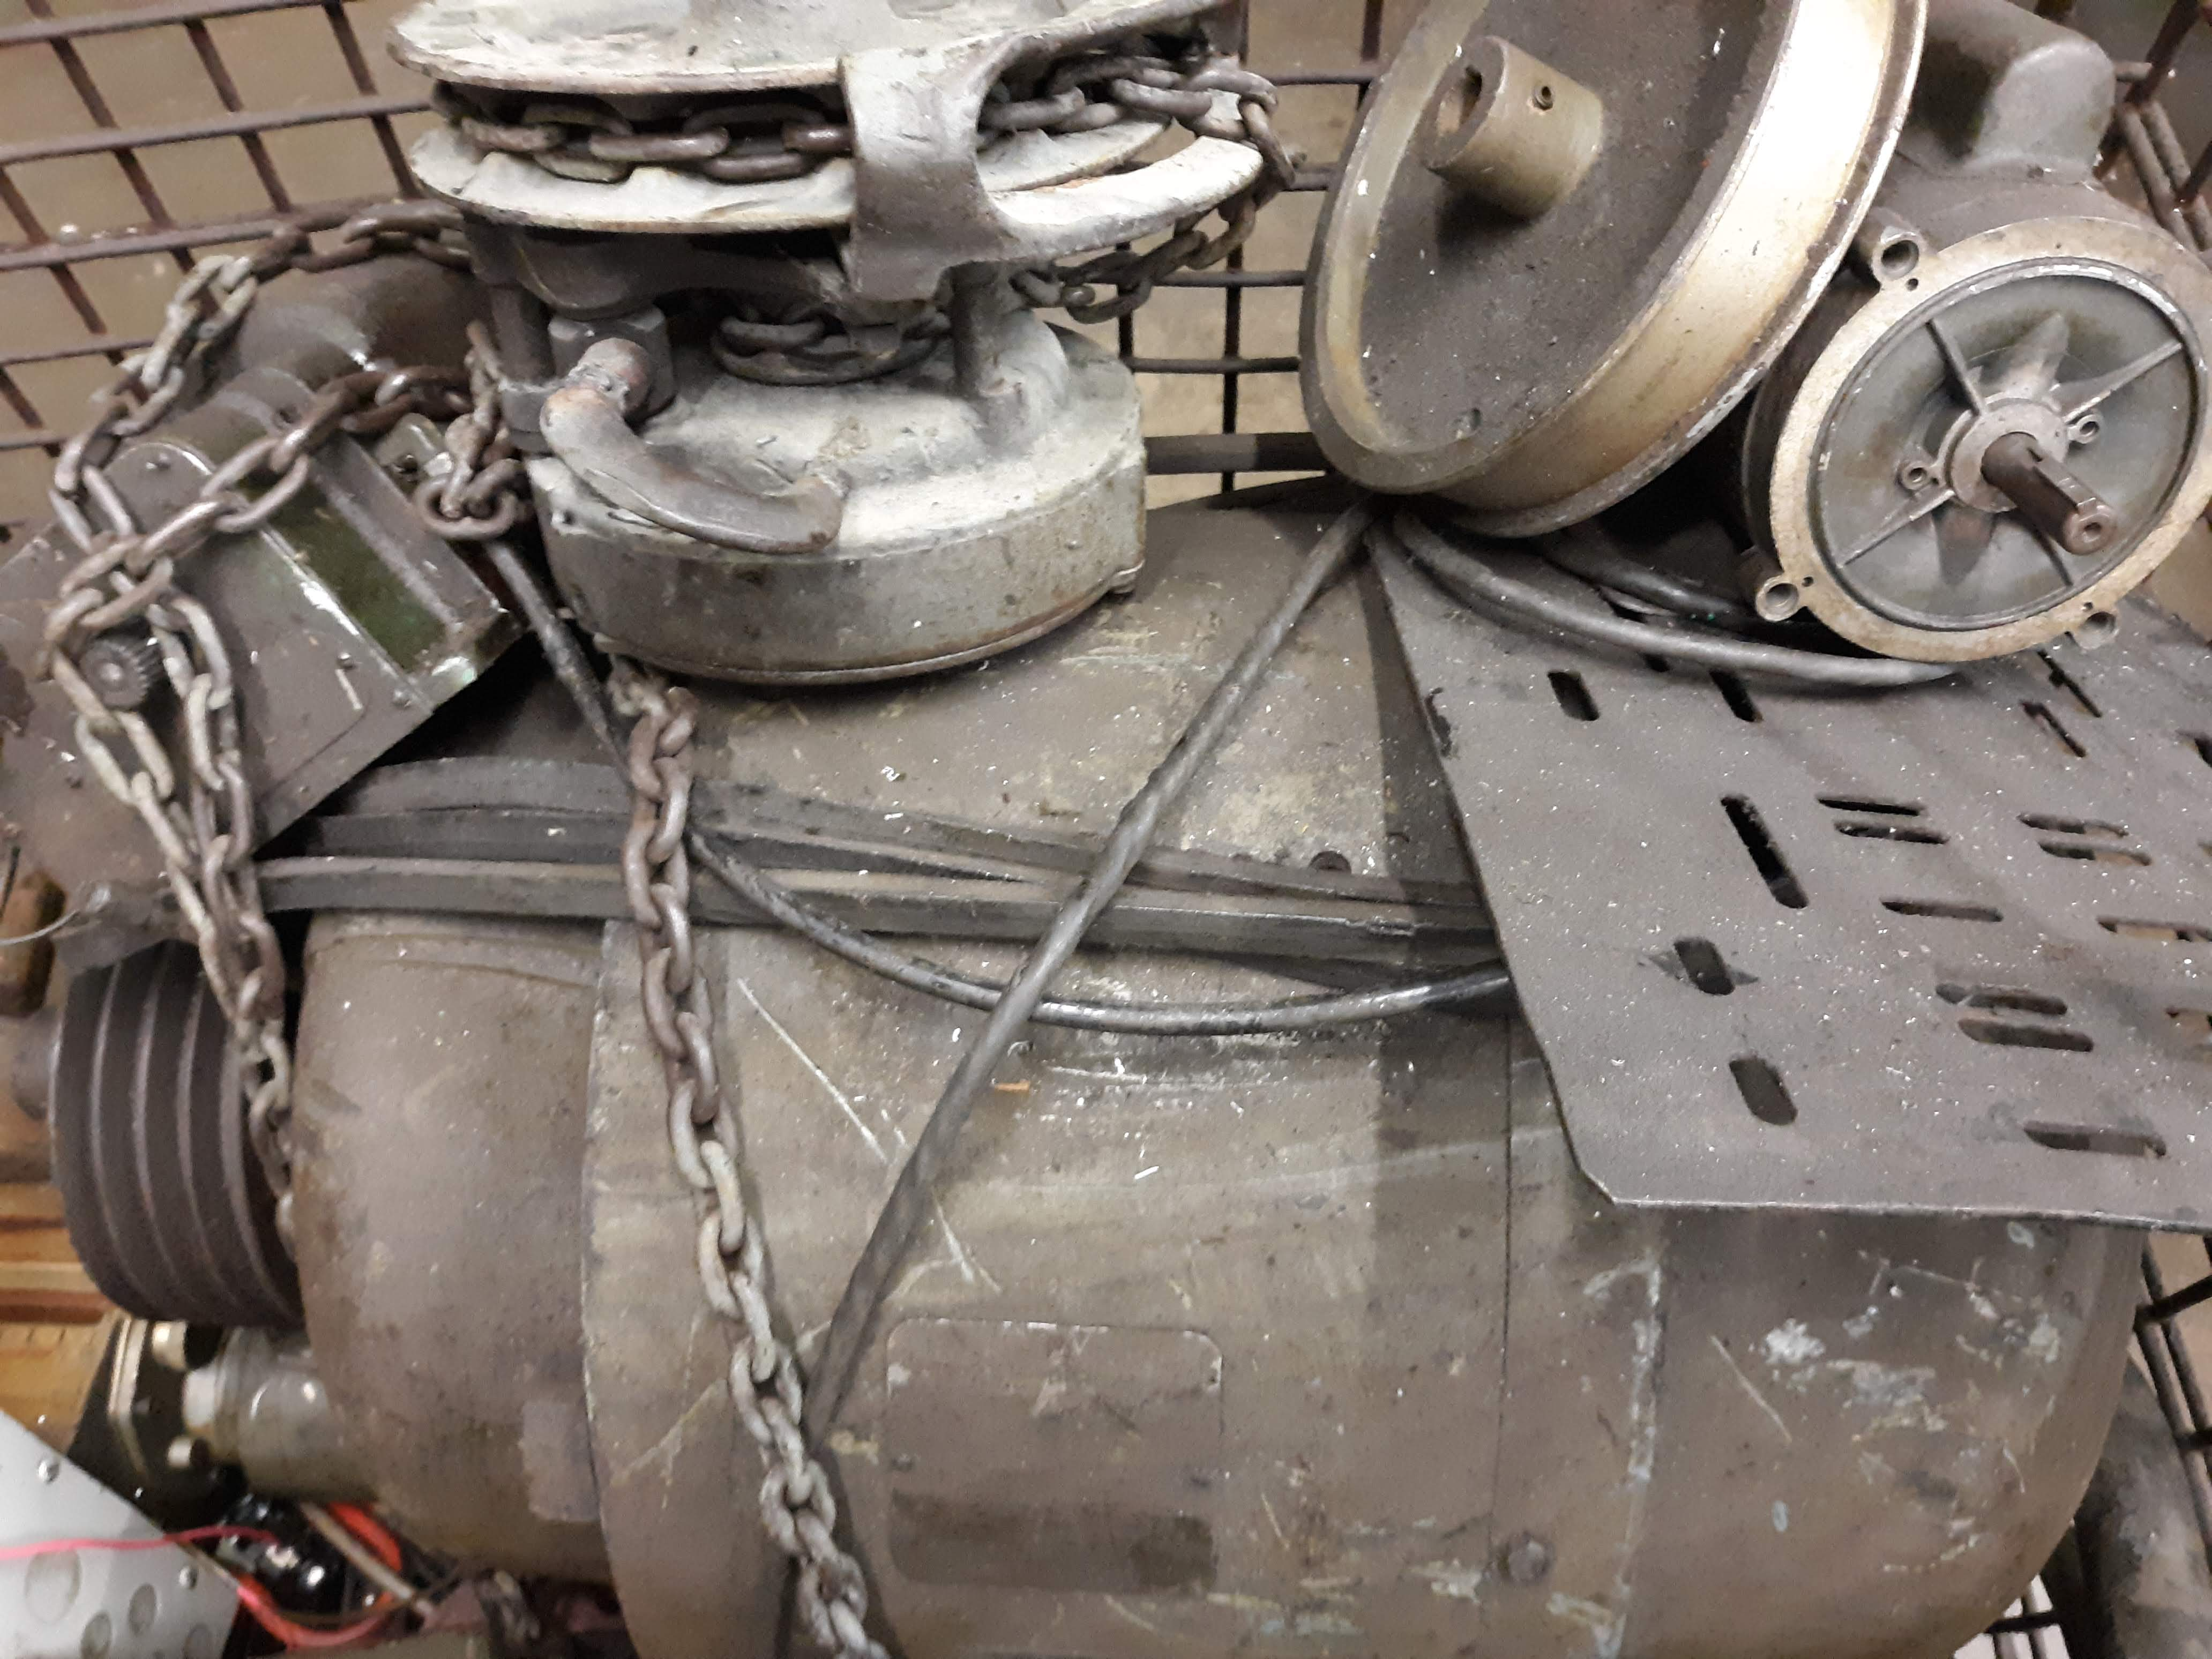 BASKET & LARGE MOTORS (TAG UNREADABLE) (LOCATED AT: 432 COUNCIL DRIVE, FORT WAYNE, IN 46825) - Image 3 of 4